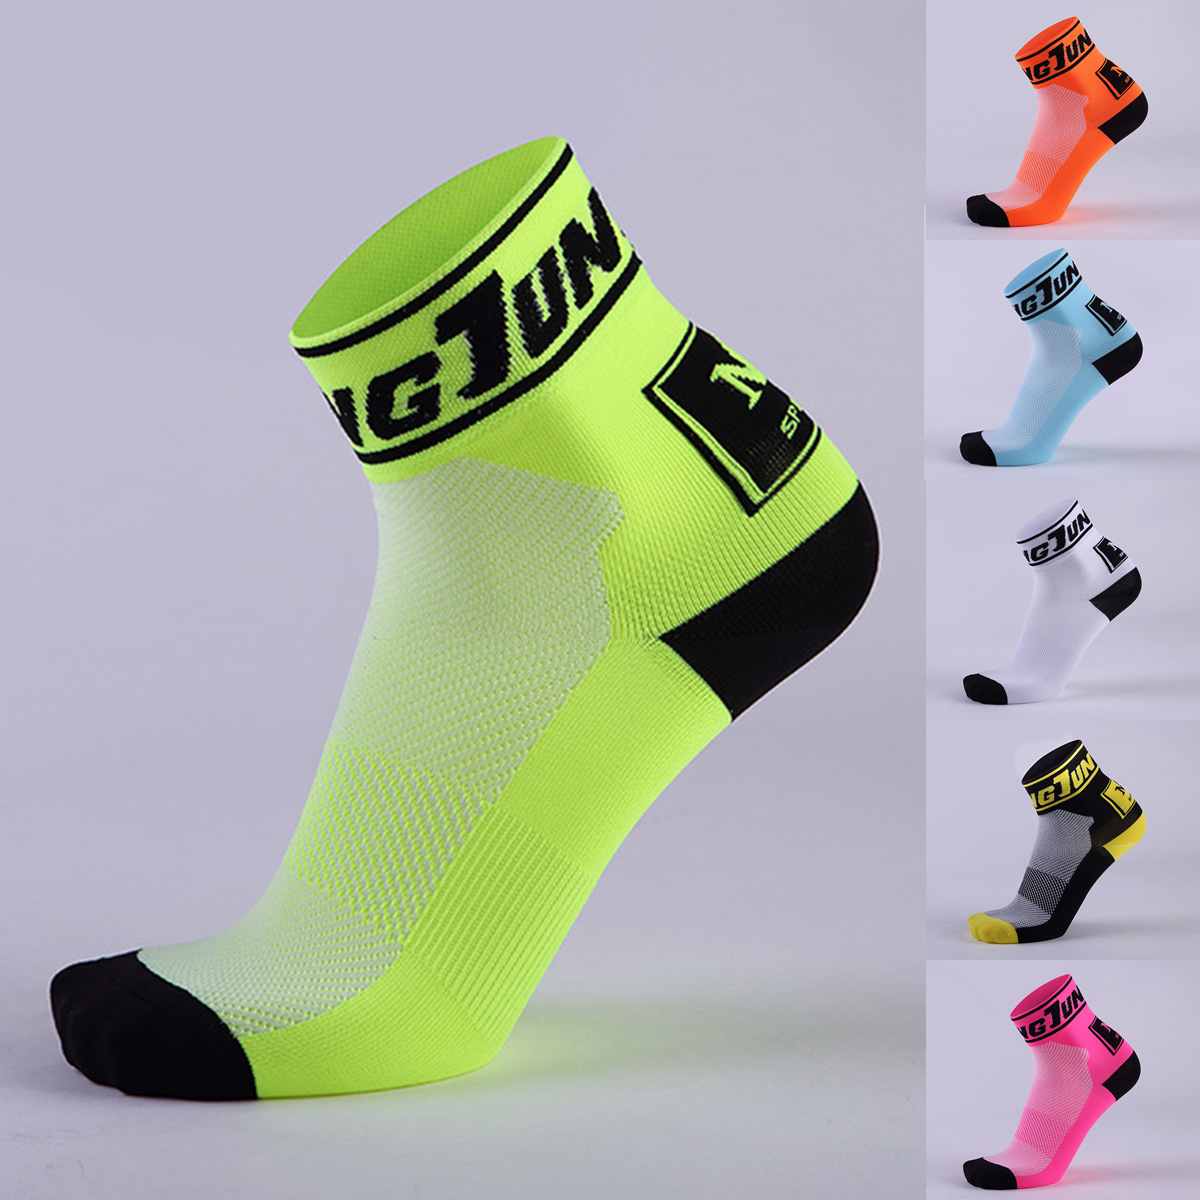 High Quality Unisex Short cycling socks Men Climbing Hiking Running Socks Quick Dry Socks Antiskid Outdoor Bicycle Cycling Socks nuckily ns357 men s quick dry outdoor cycling short pants black m